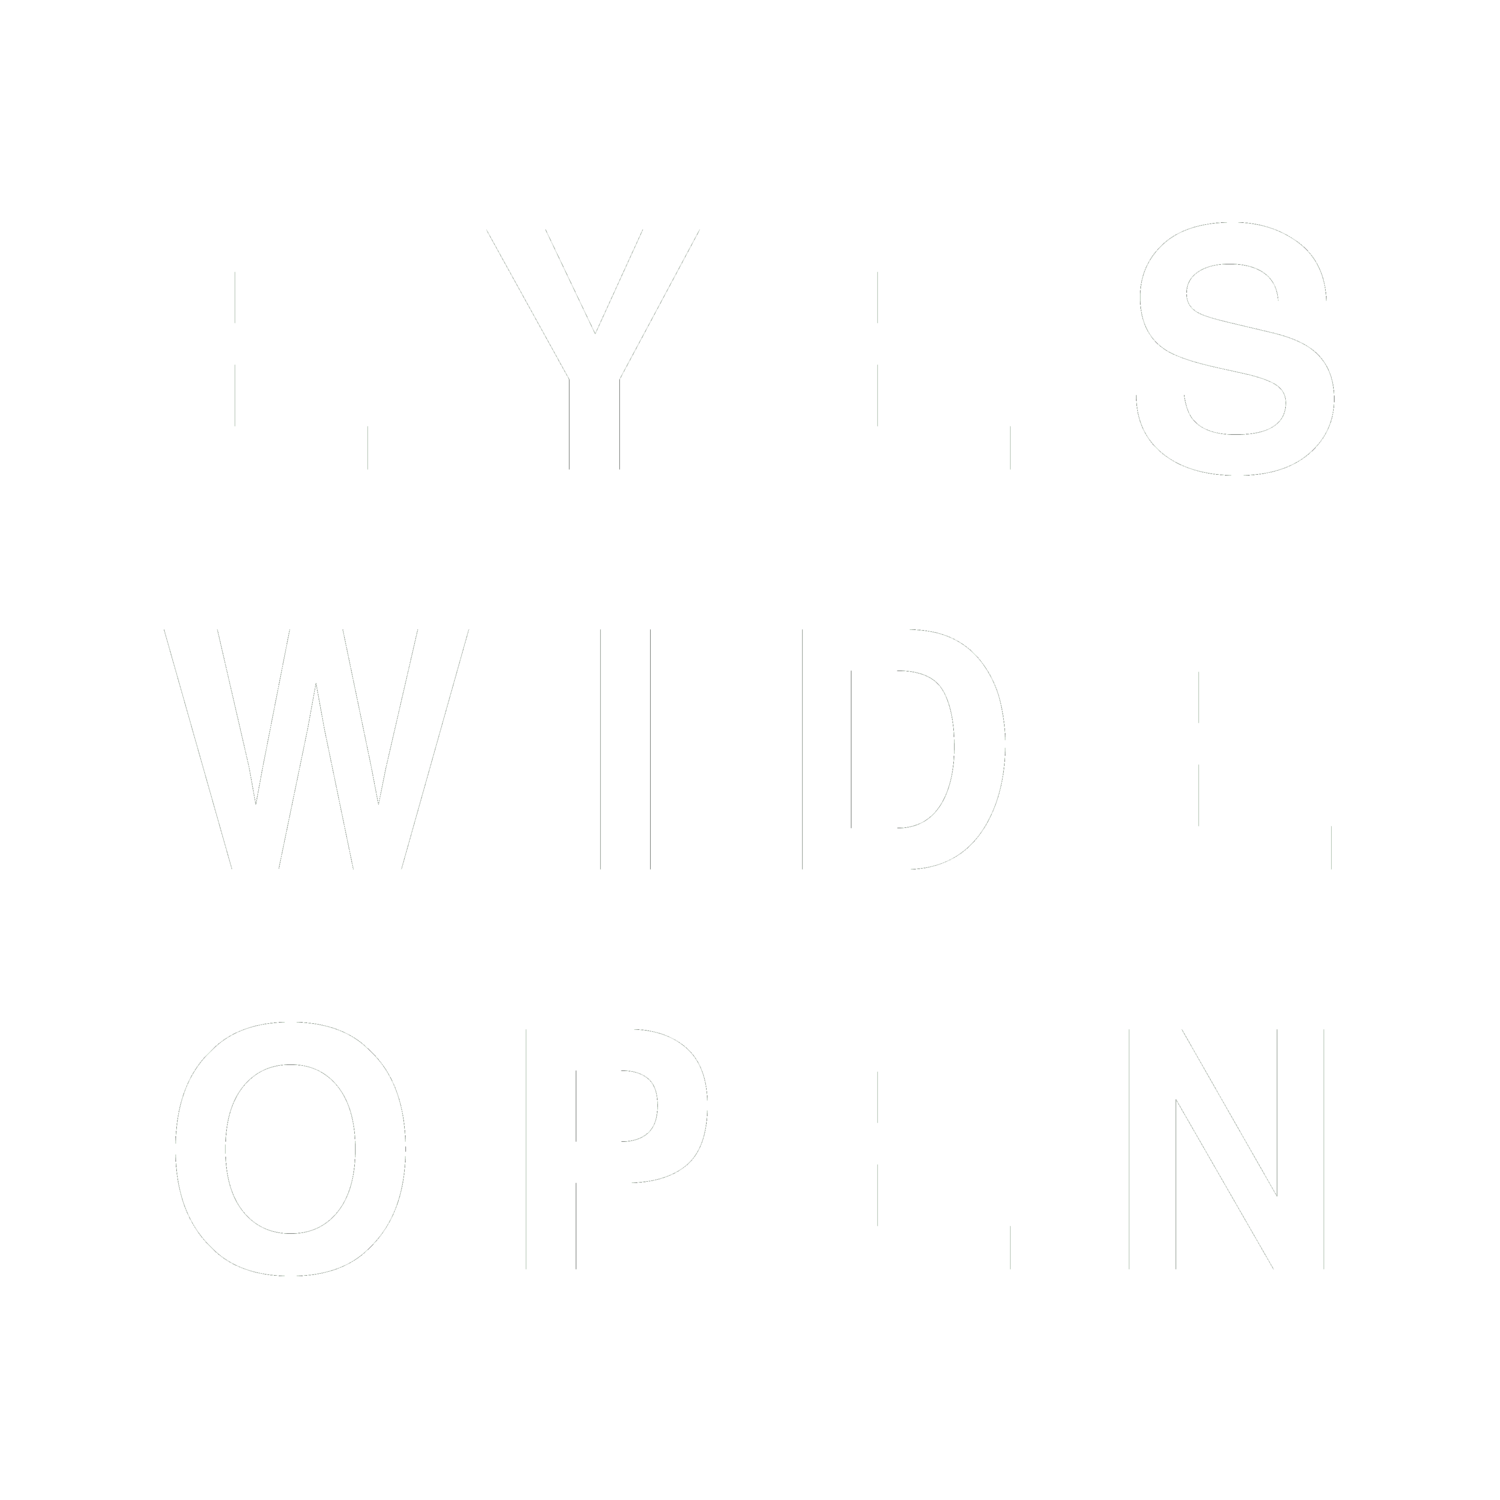 Eyes Wide Open Cinema